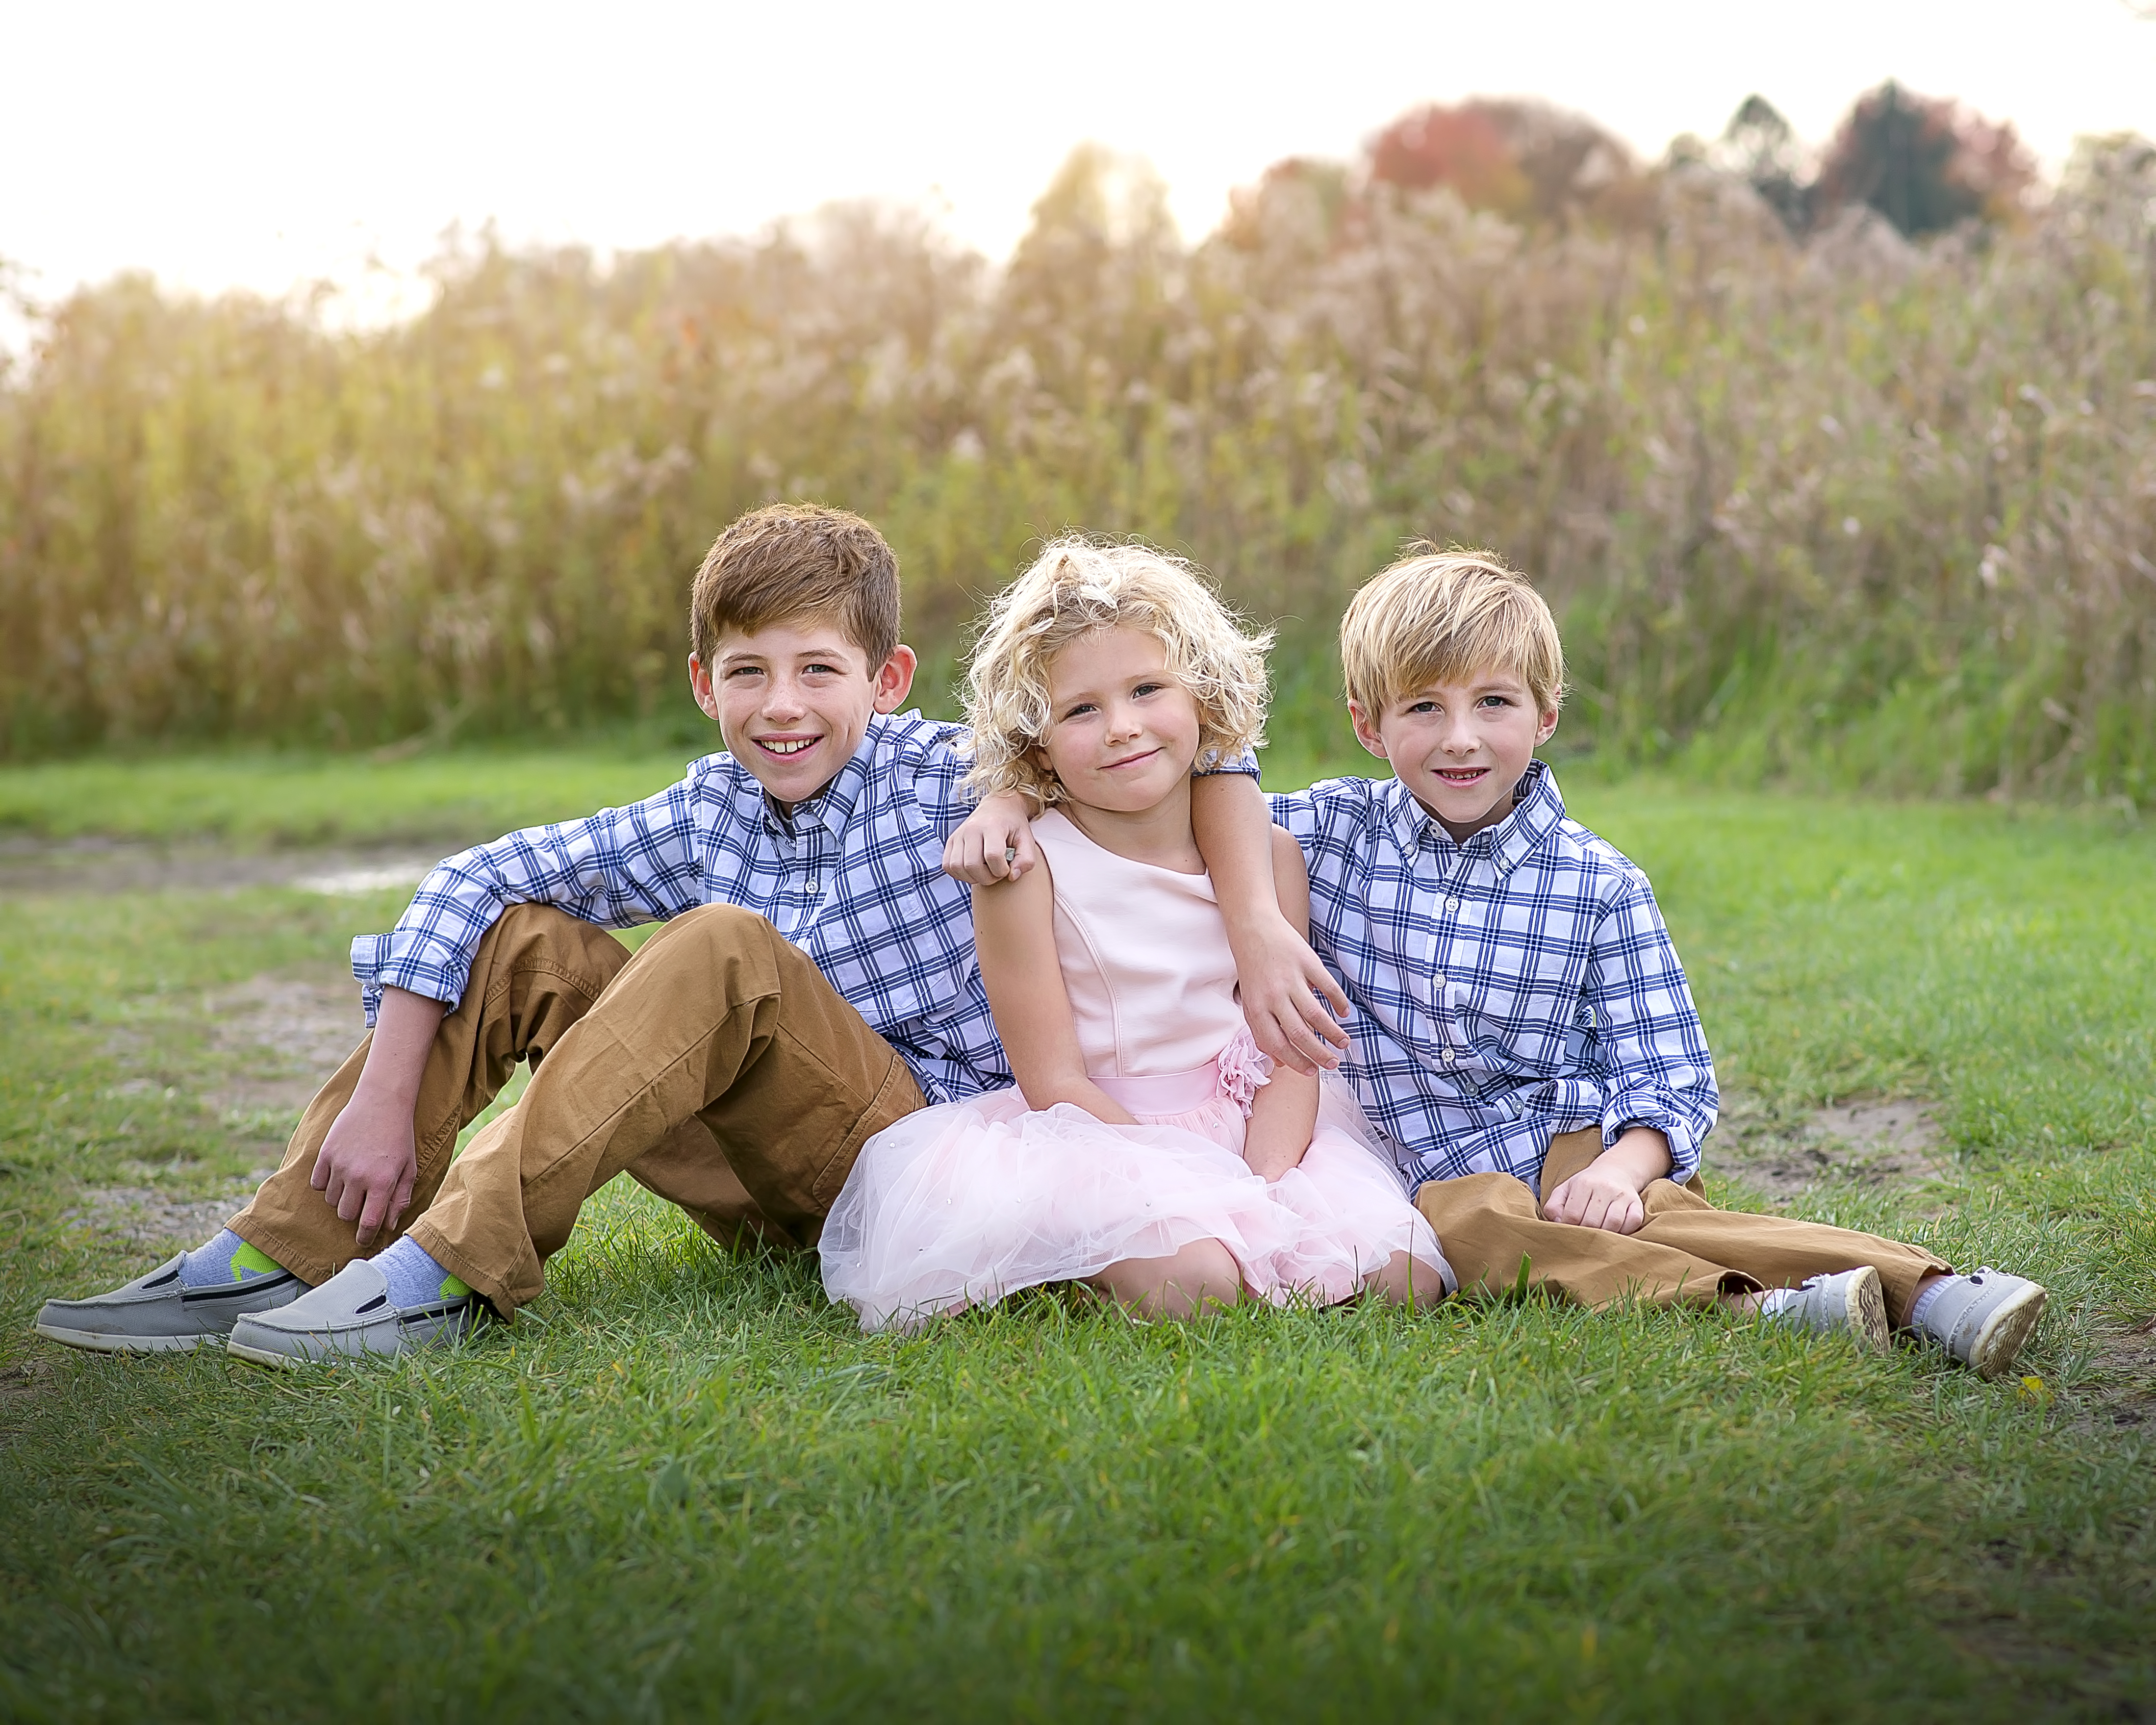 Outdoor kids session